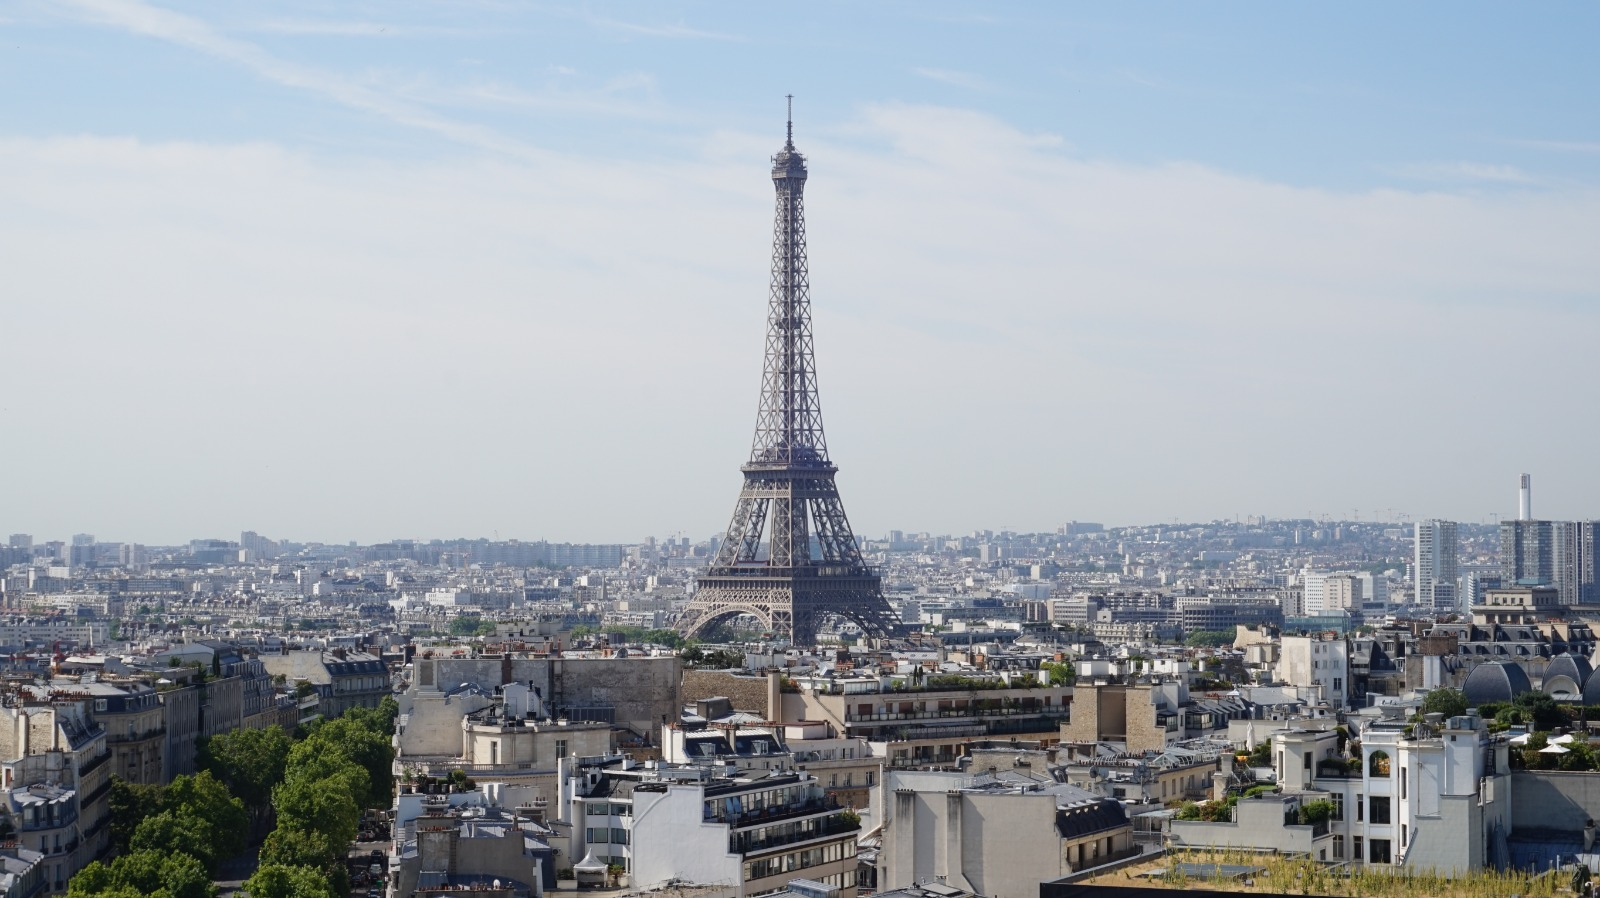 View of the Eiffel Tower from the Arc de Triomphe, Paris